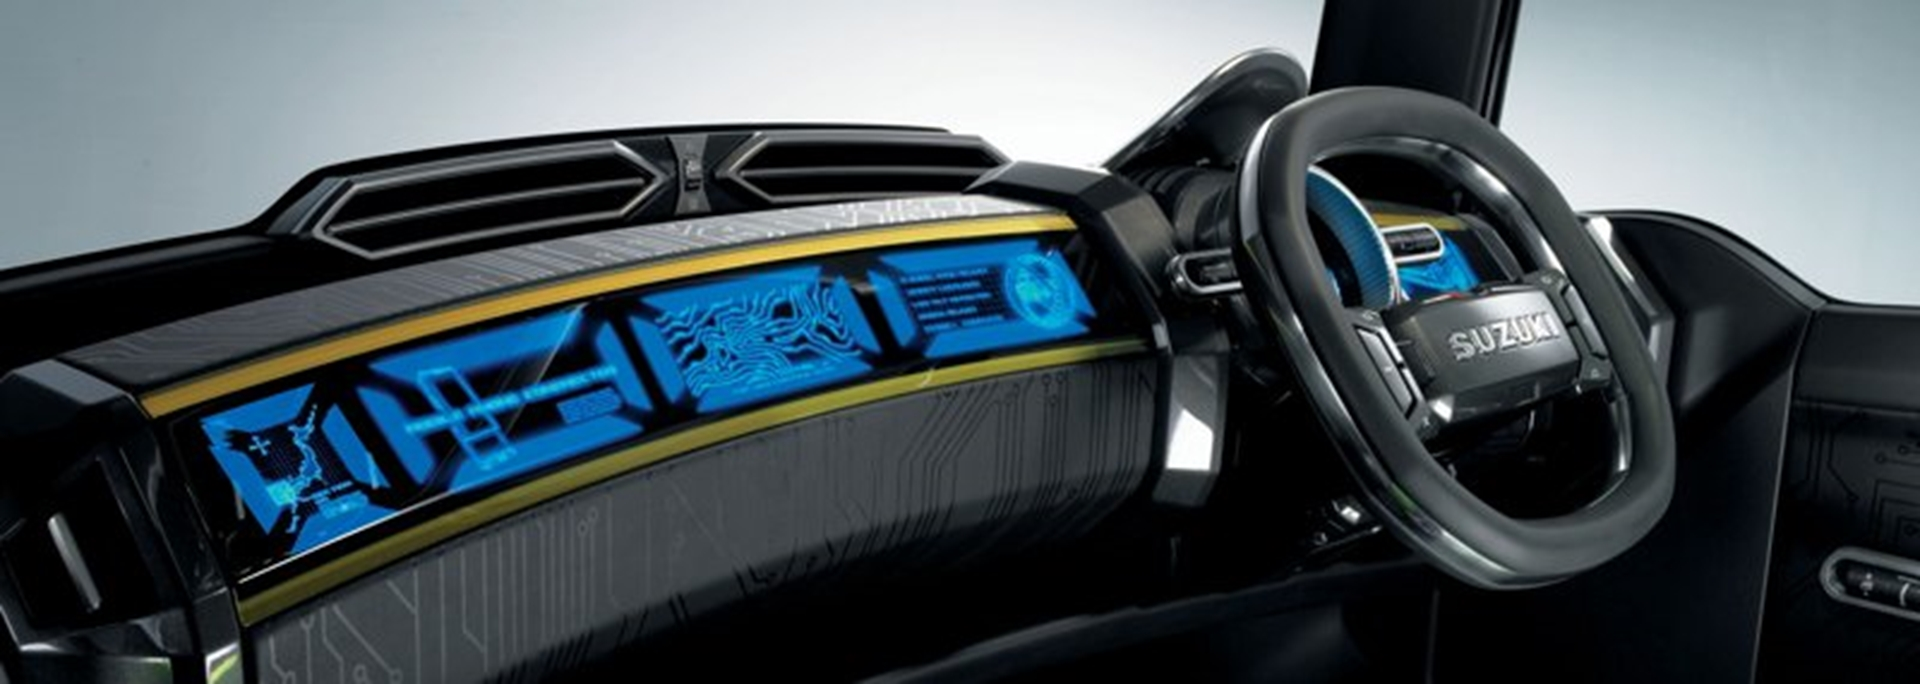 Suzuki X Head Concept Car Interior Dashboard